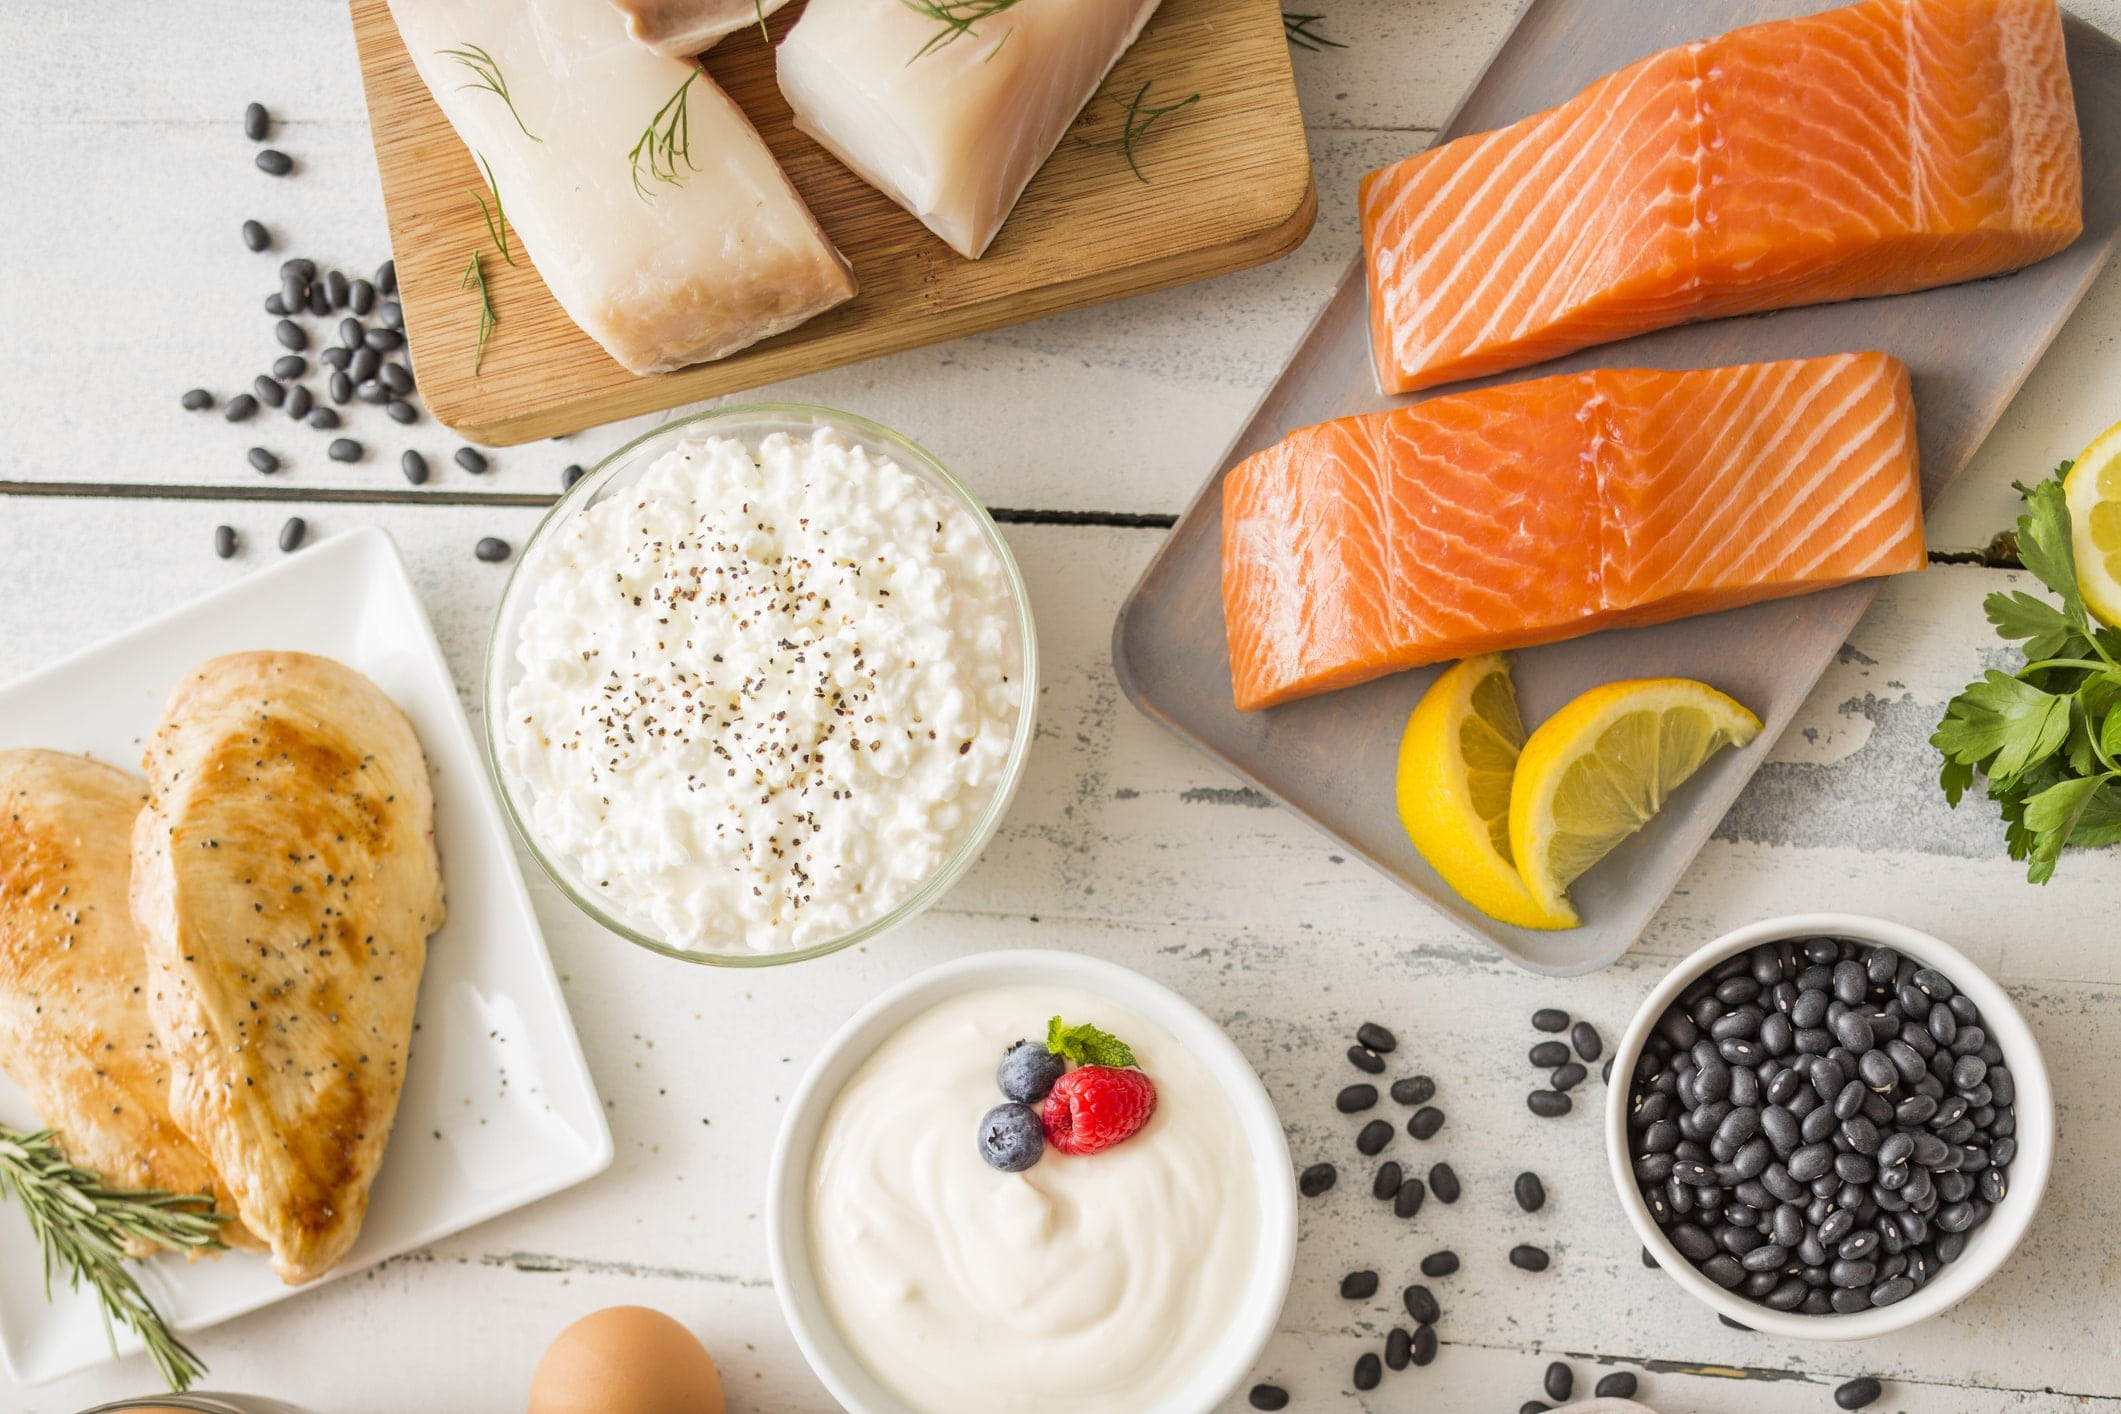 Foods To Eat On Your Period To Reduce Pain